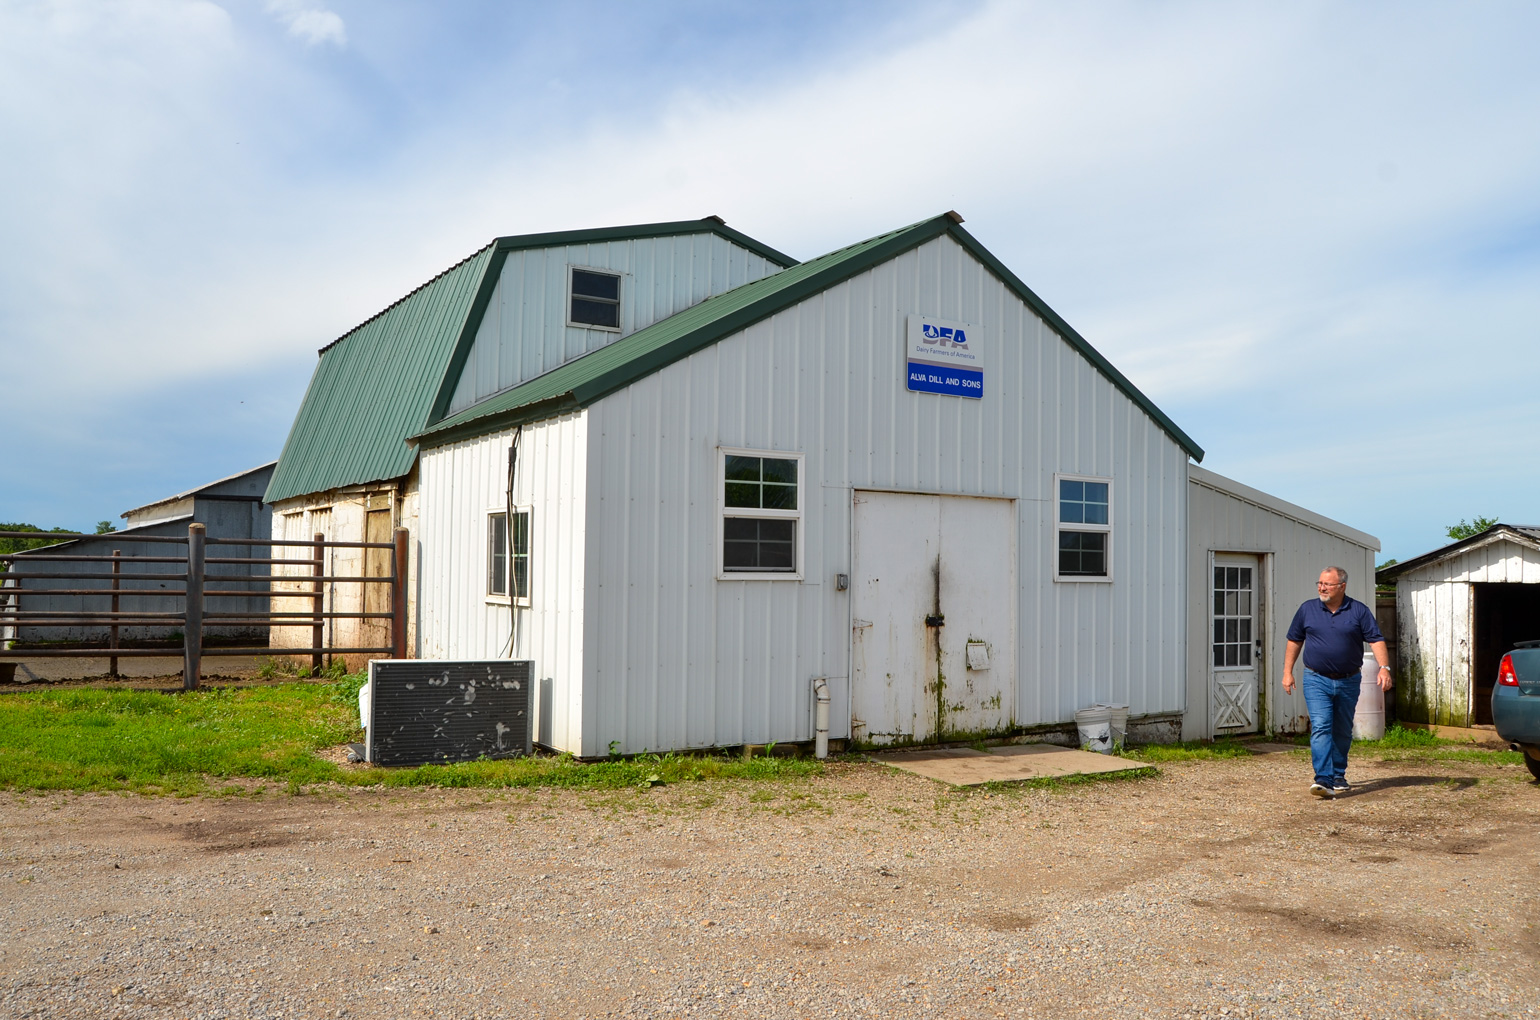 Pictured is the exterior of the milking barn at Alva Dill and Sons Dairy Farm